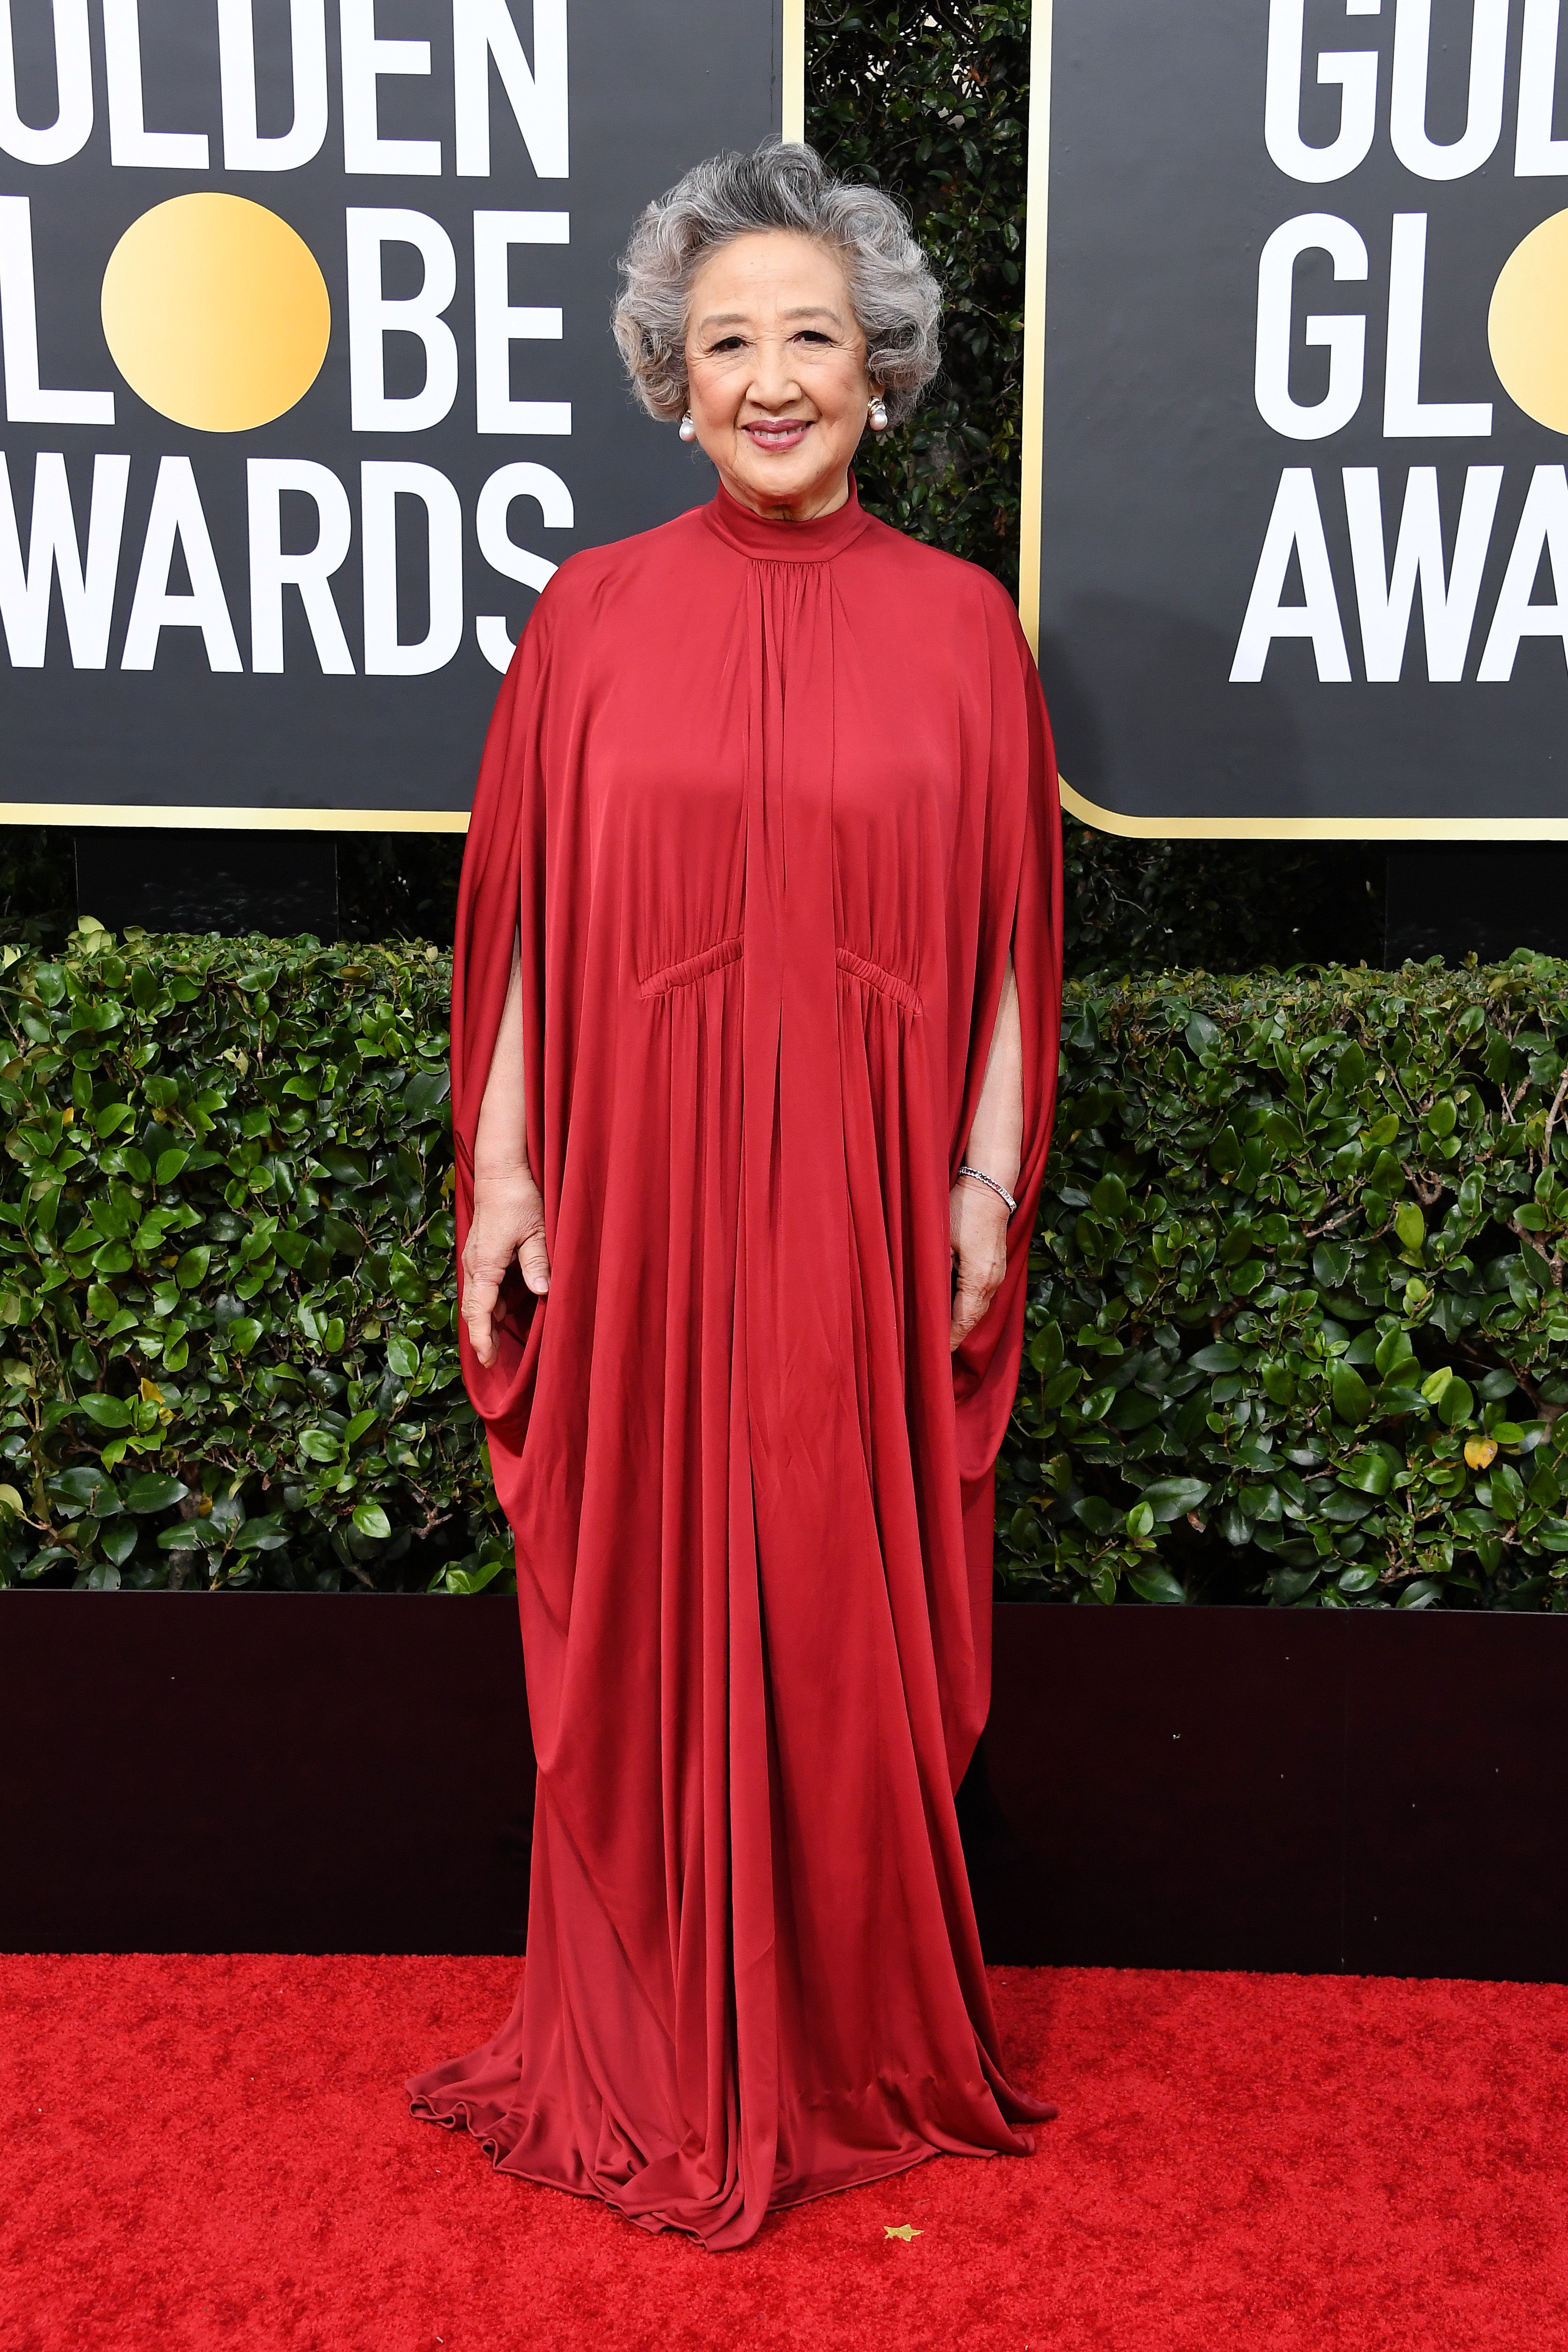 BEVERLY HILLS, CALIFORNIA - JANUARY 05: Zhao Shuzhen attends the 77th Annual Golden Globe Awards at The Beverly Hilton Hotel on January 05, 2020 in Beverly Hills, California. (Photo by Steve Granitz/WireImage)